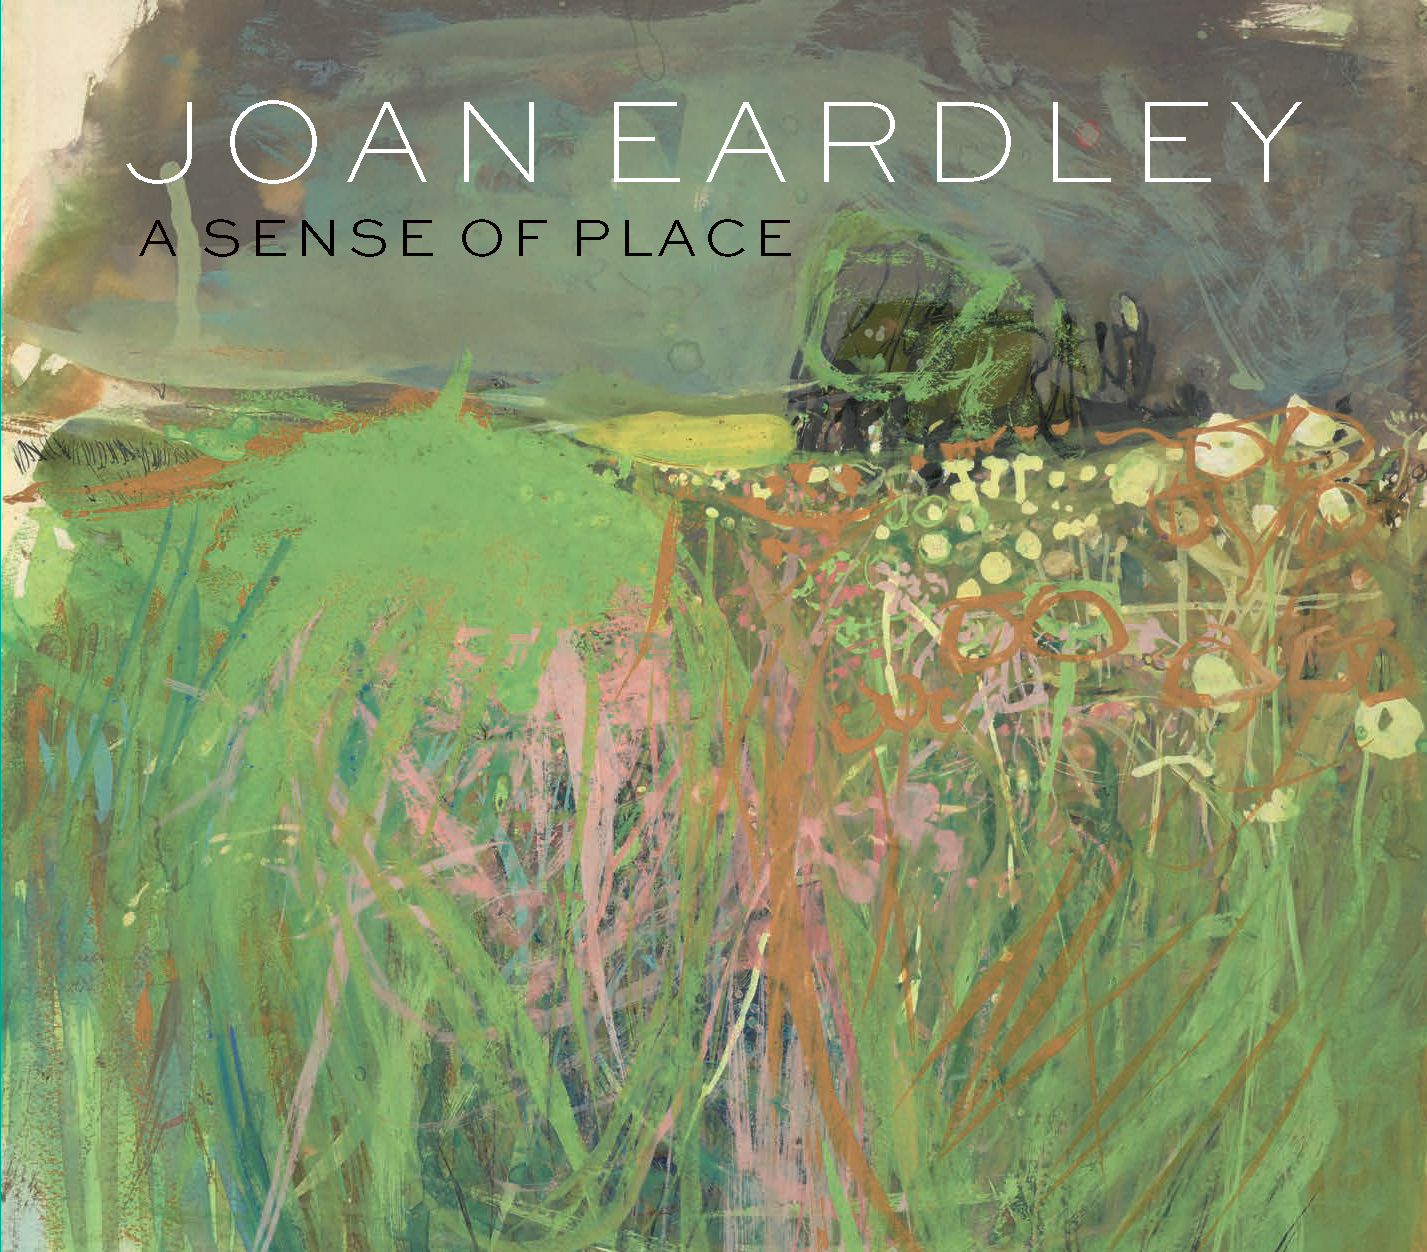 Joan Eardley's Life & Work